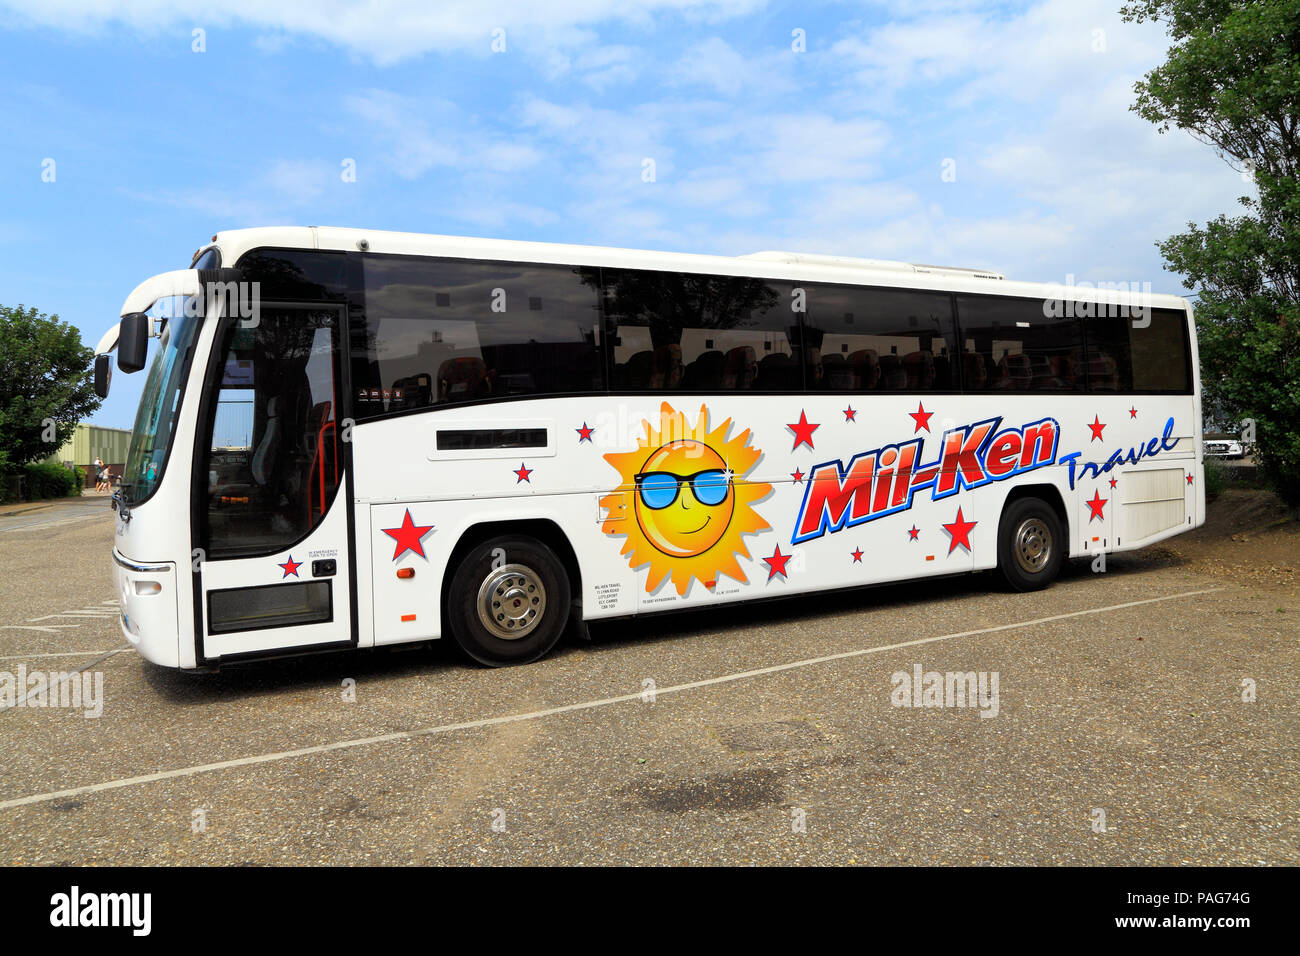 Mil-Ken, Travel coach, day trips, Littleport, Cambridgeshire, UK, holiday, coaches, travel - Stock Image